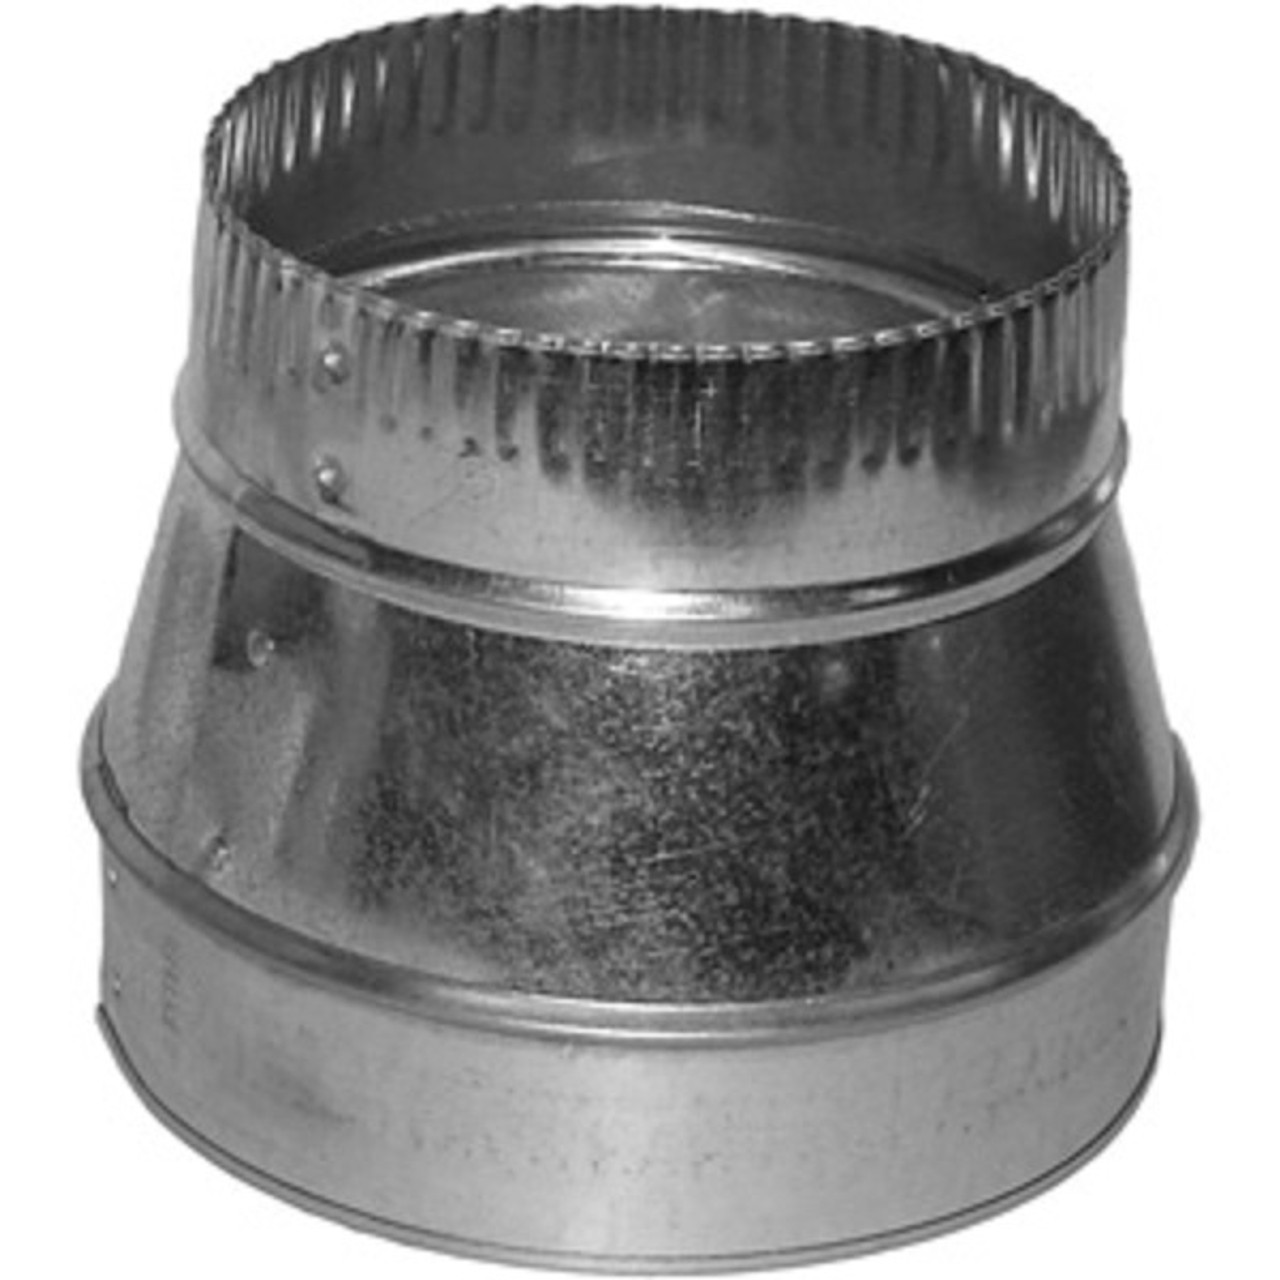 8 To 6 Sheet Metal HVAC Duct Reducer For Flexible Or Ducts